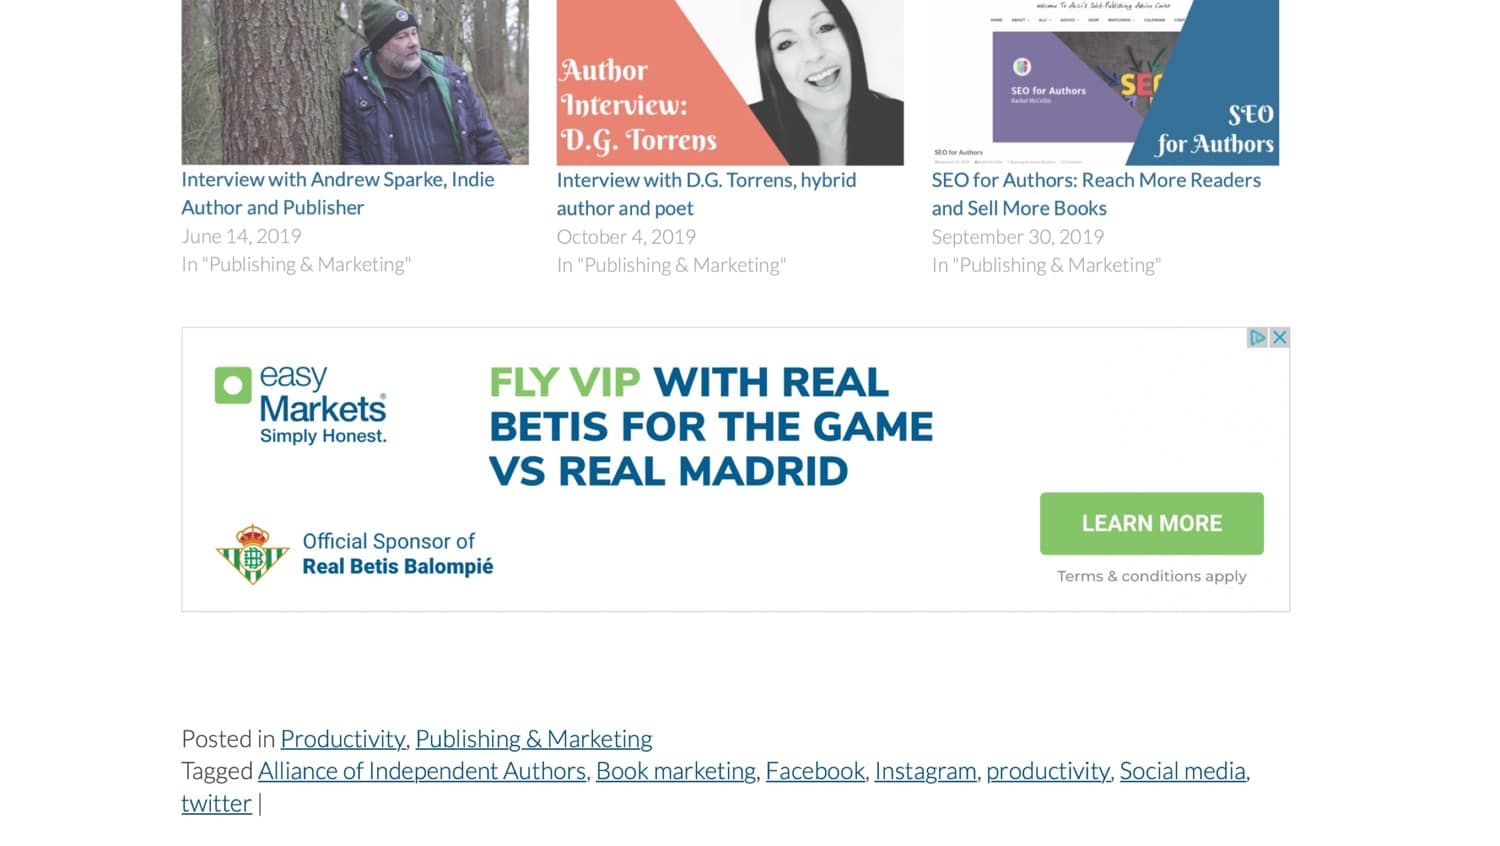 Ad displayed below content